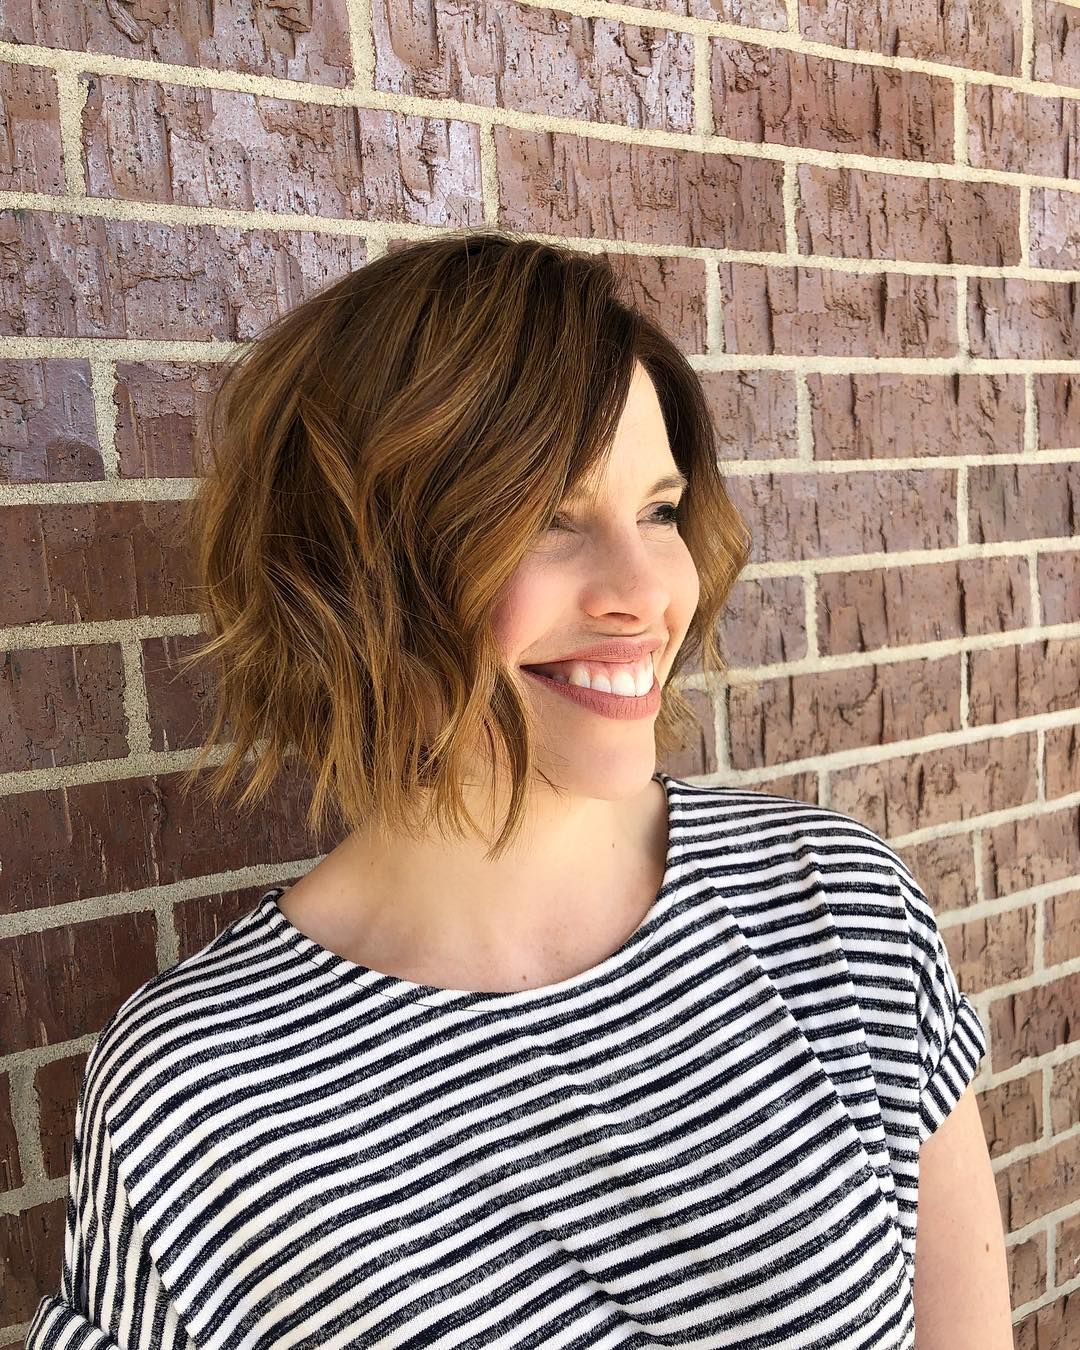 Hair by Sisu Hairdressing, Lincoln, NE // Smiling because this haircut + color combo is just too ...